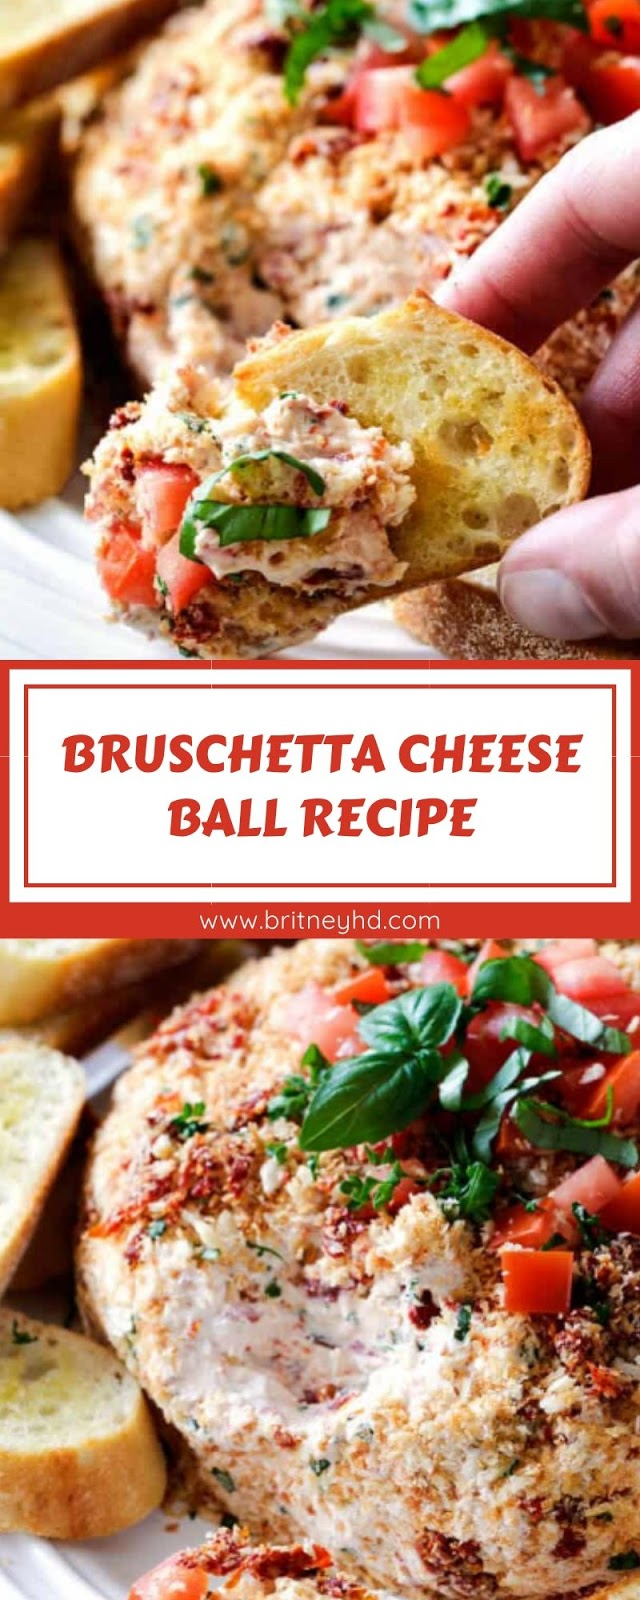 BRUSCHETTA CHEESE BALL RECIPE